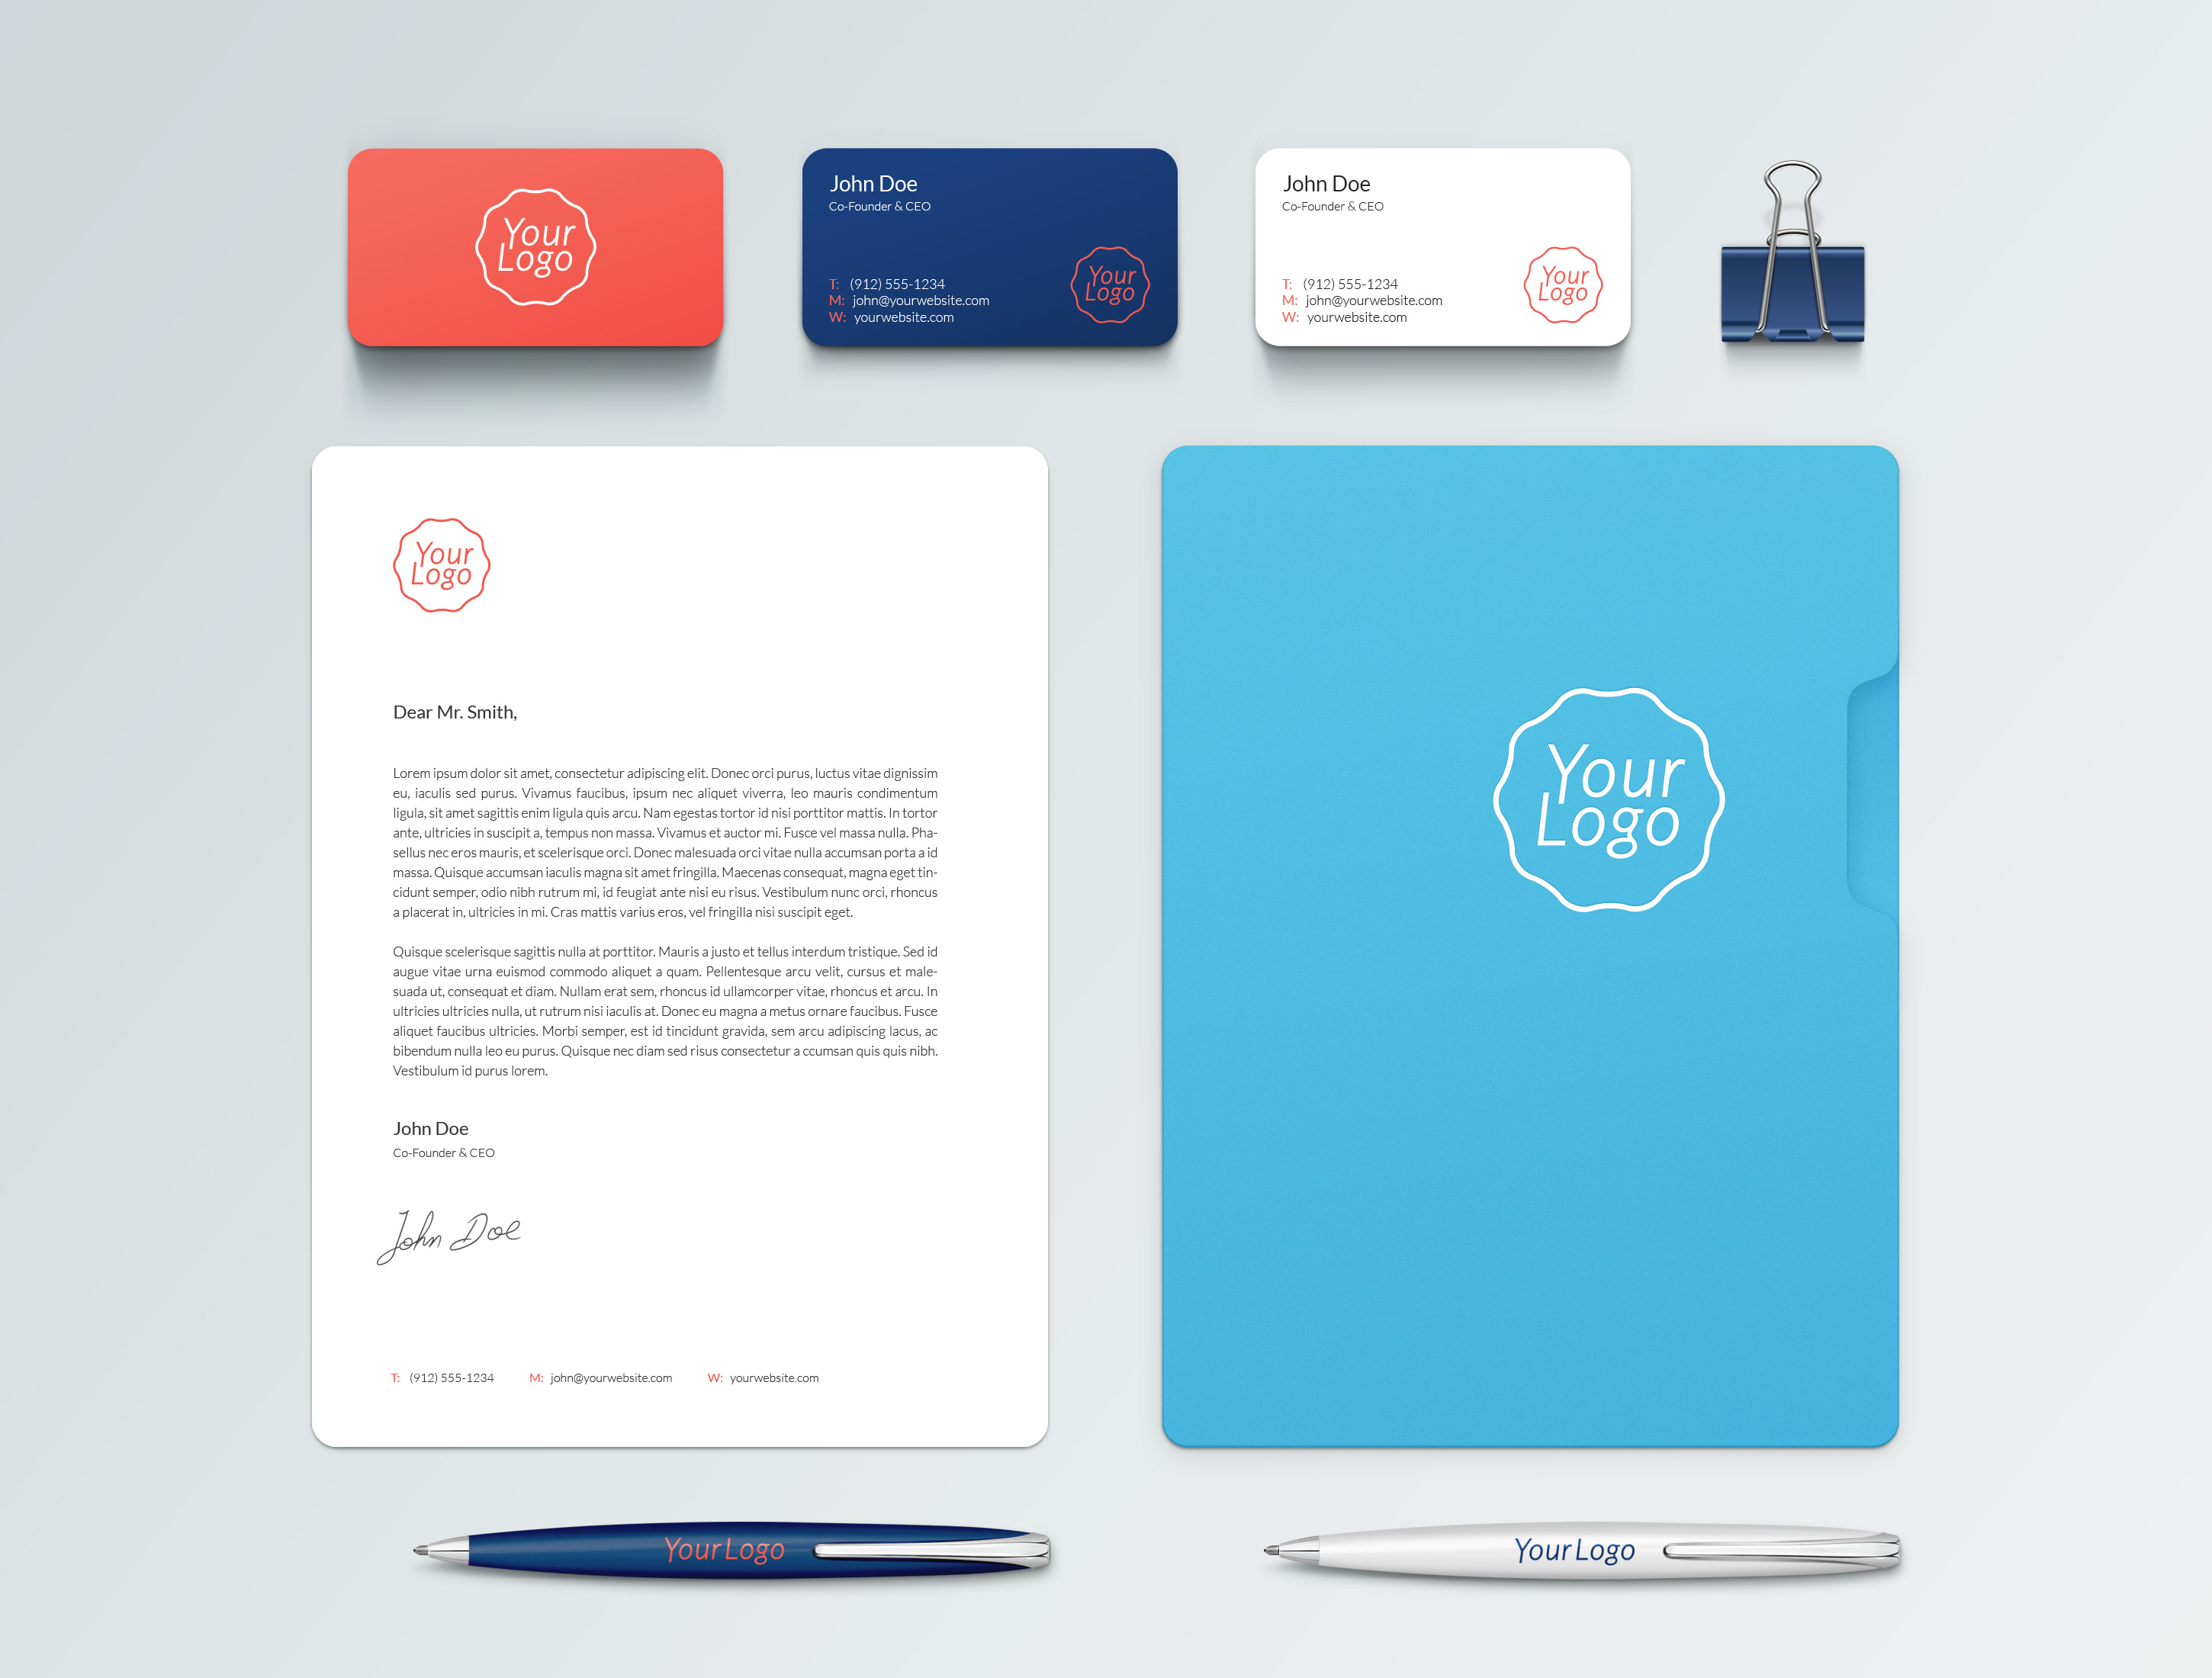 Why open source graphic design and 10 tools for designers no im rather referring to stationery design brandingidentity mock ups and alike more or less something like what is shown in the images at the xflitez Images